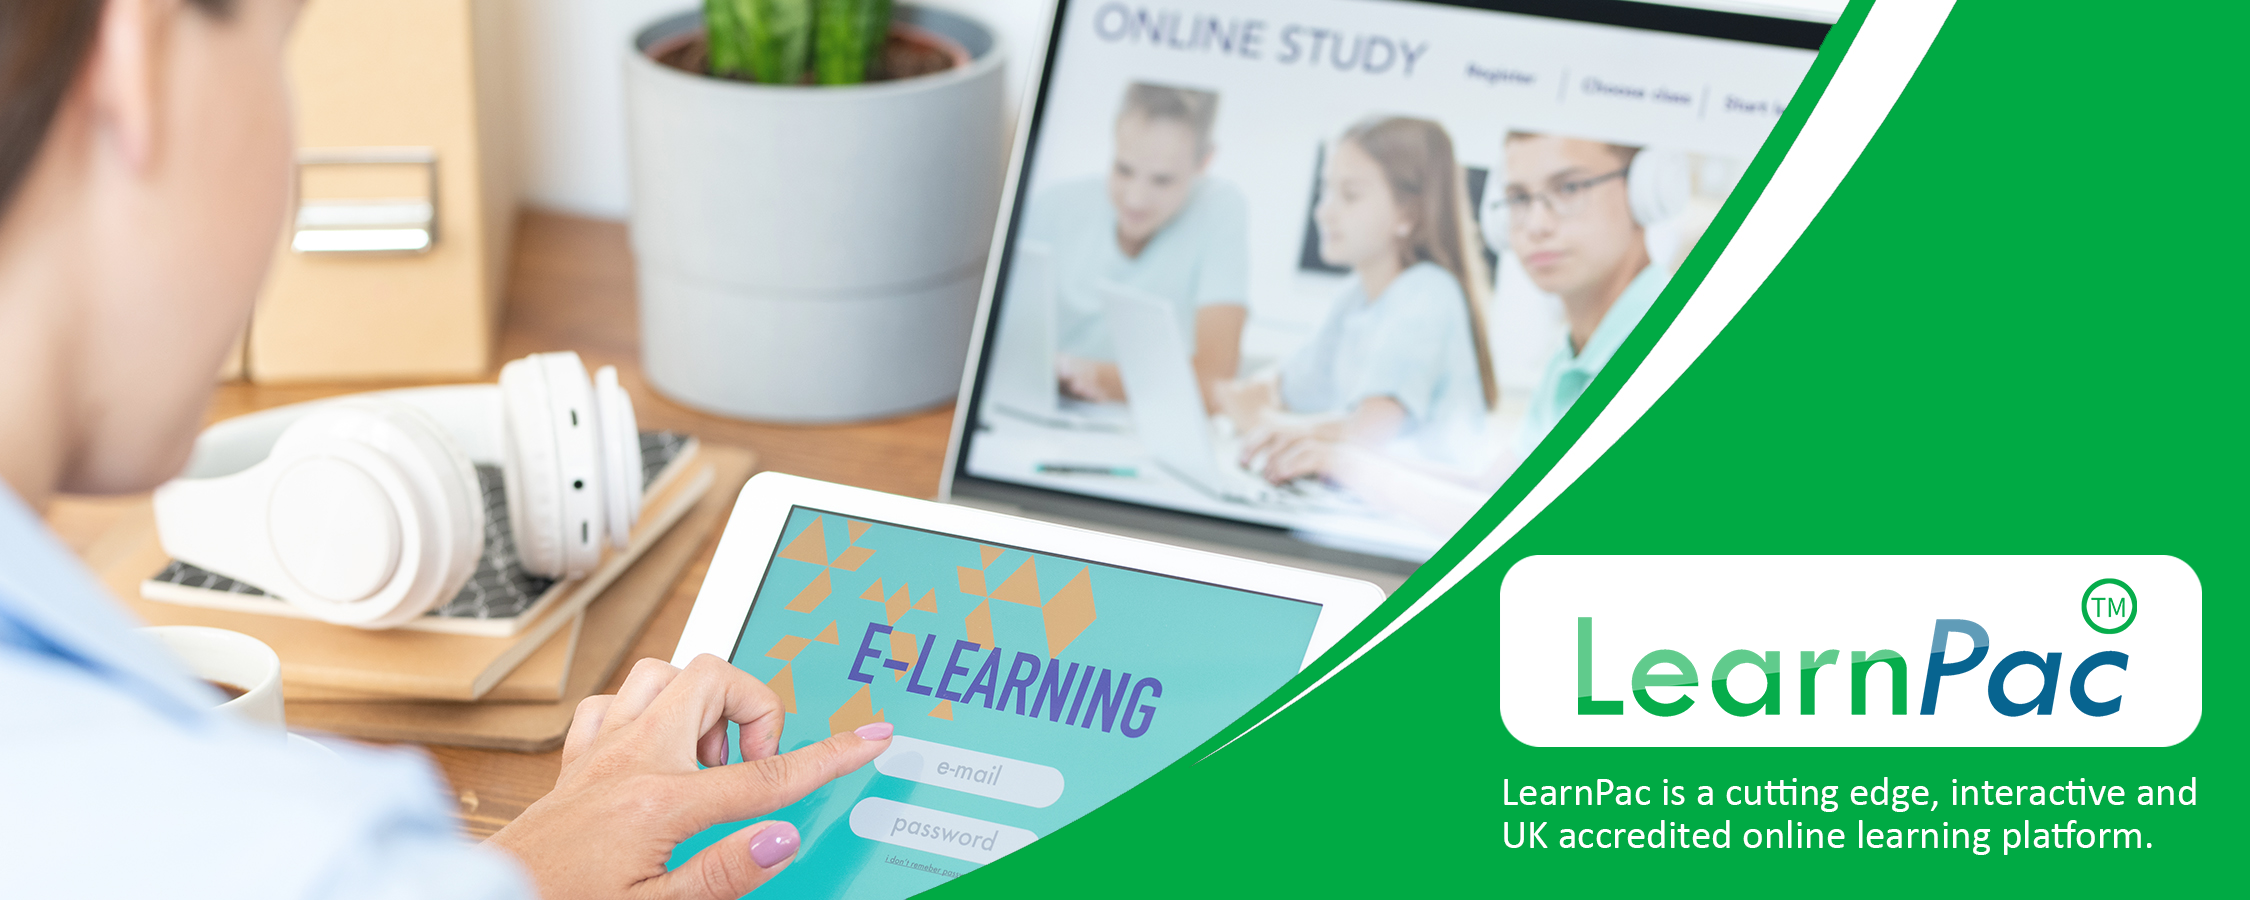 Coaching and Mentoring Training - Online Learning Courses - E-Learning Courses - LearnPac Systems UK -